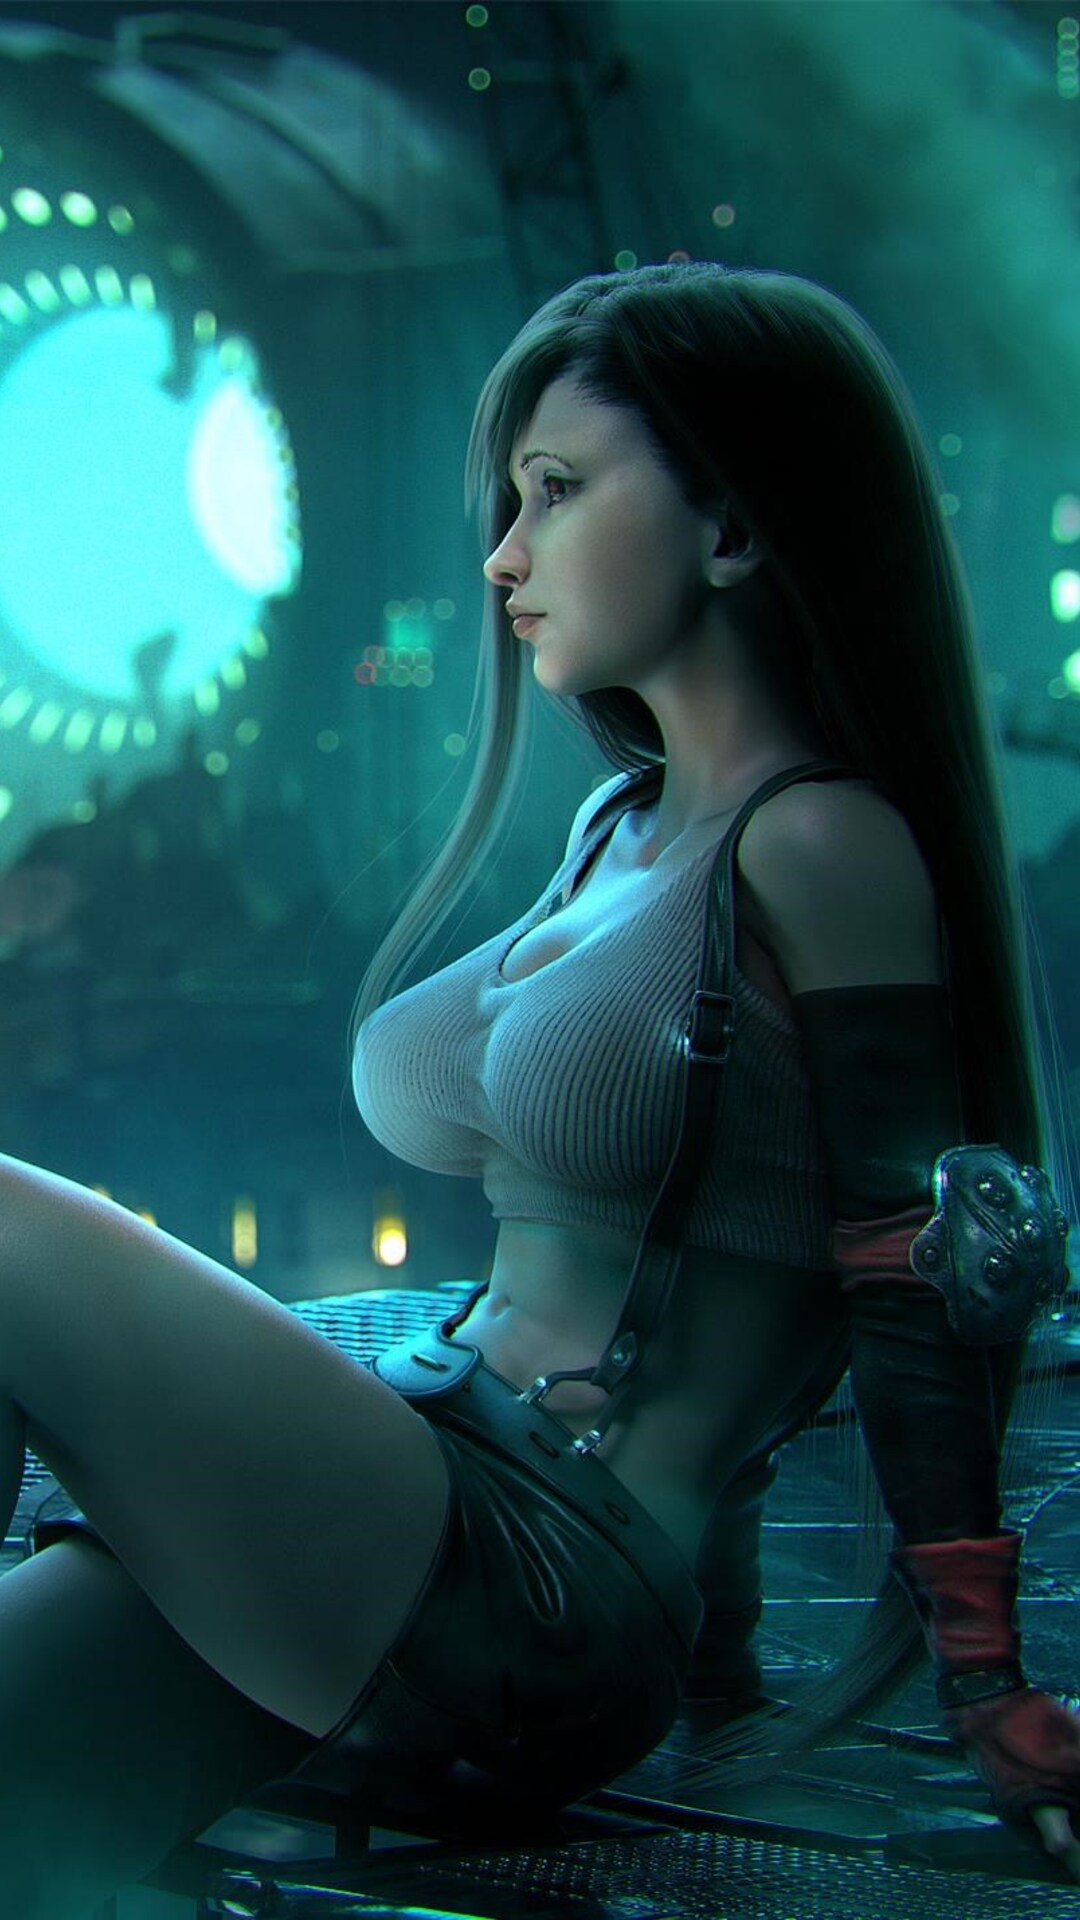 image Final fantasy vii tifa prisoner 3d